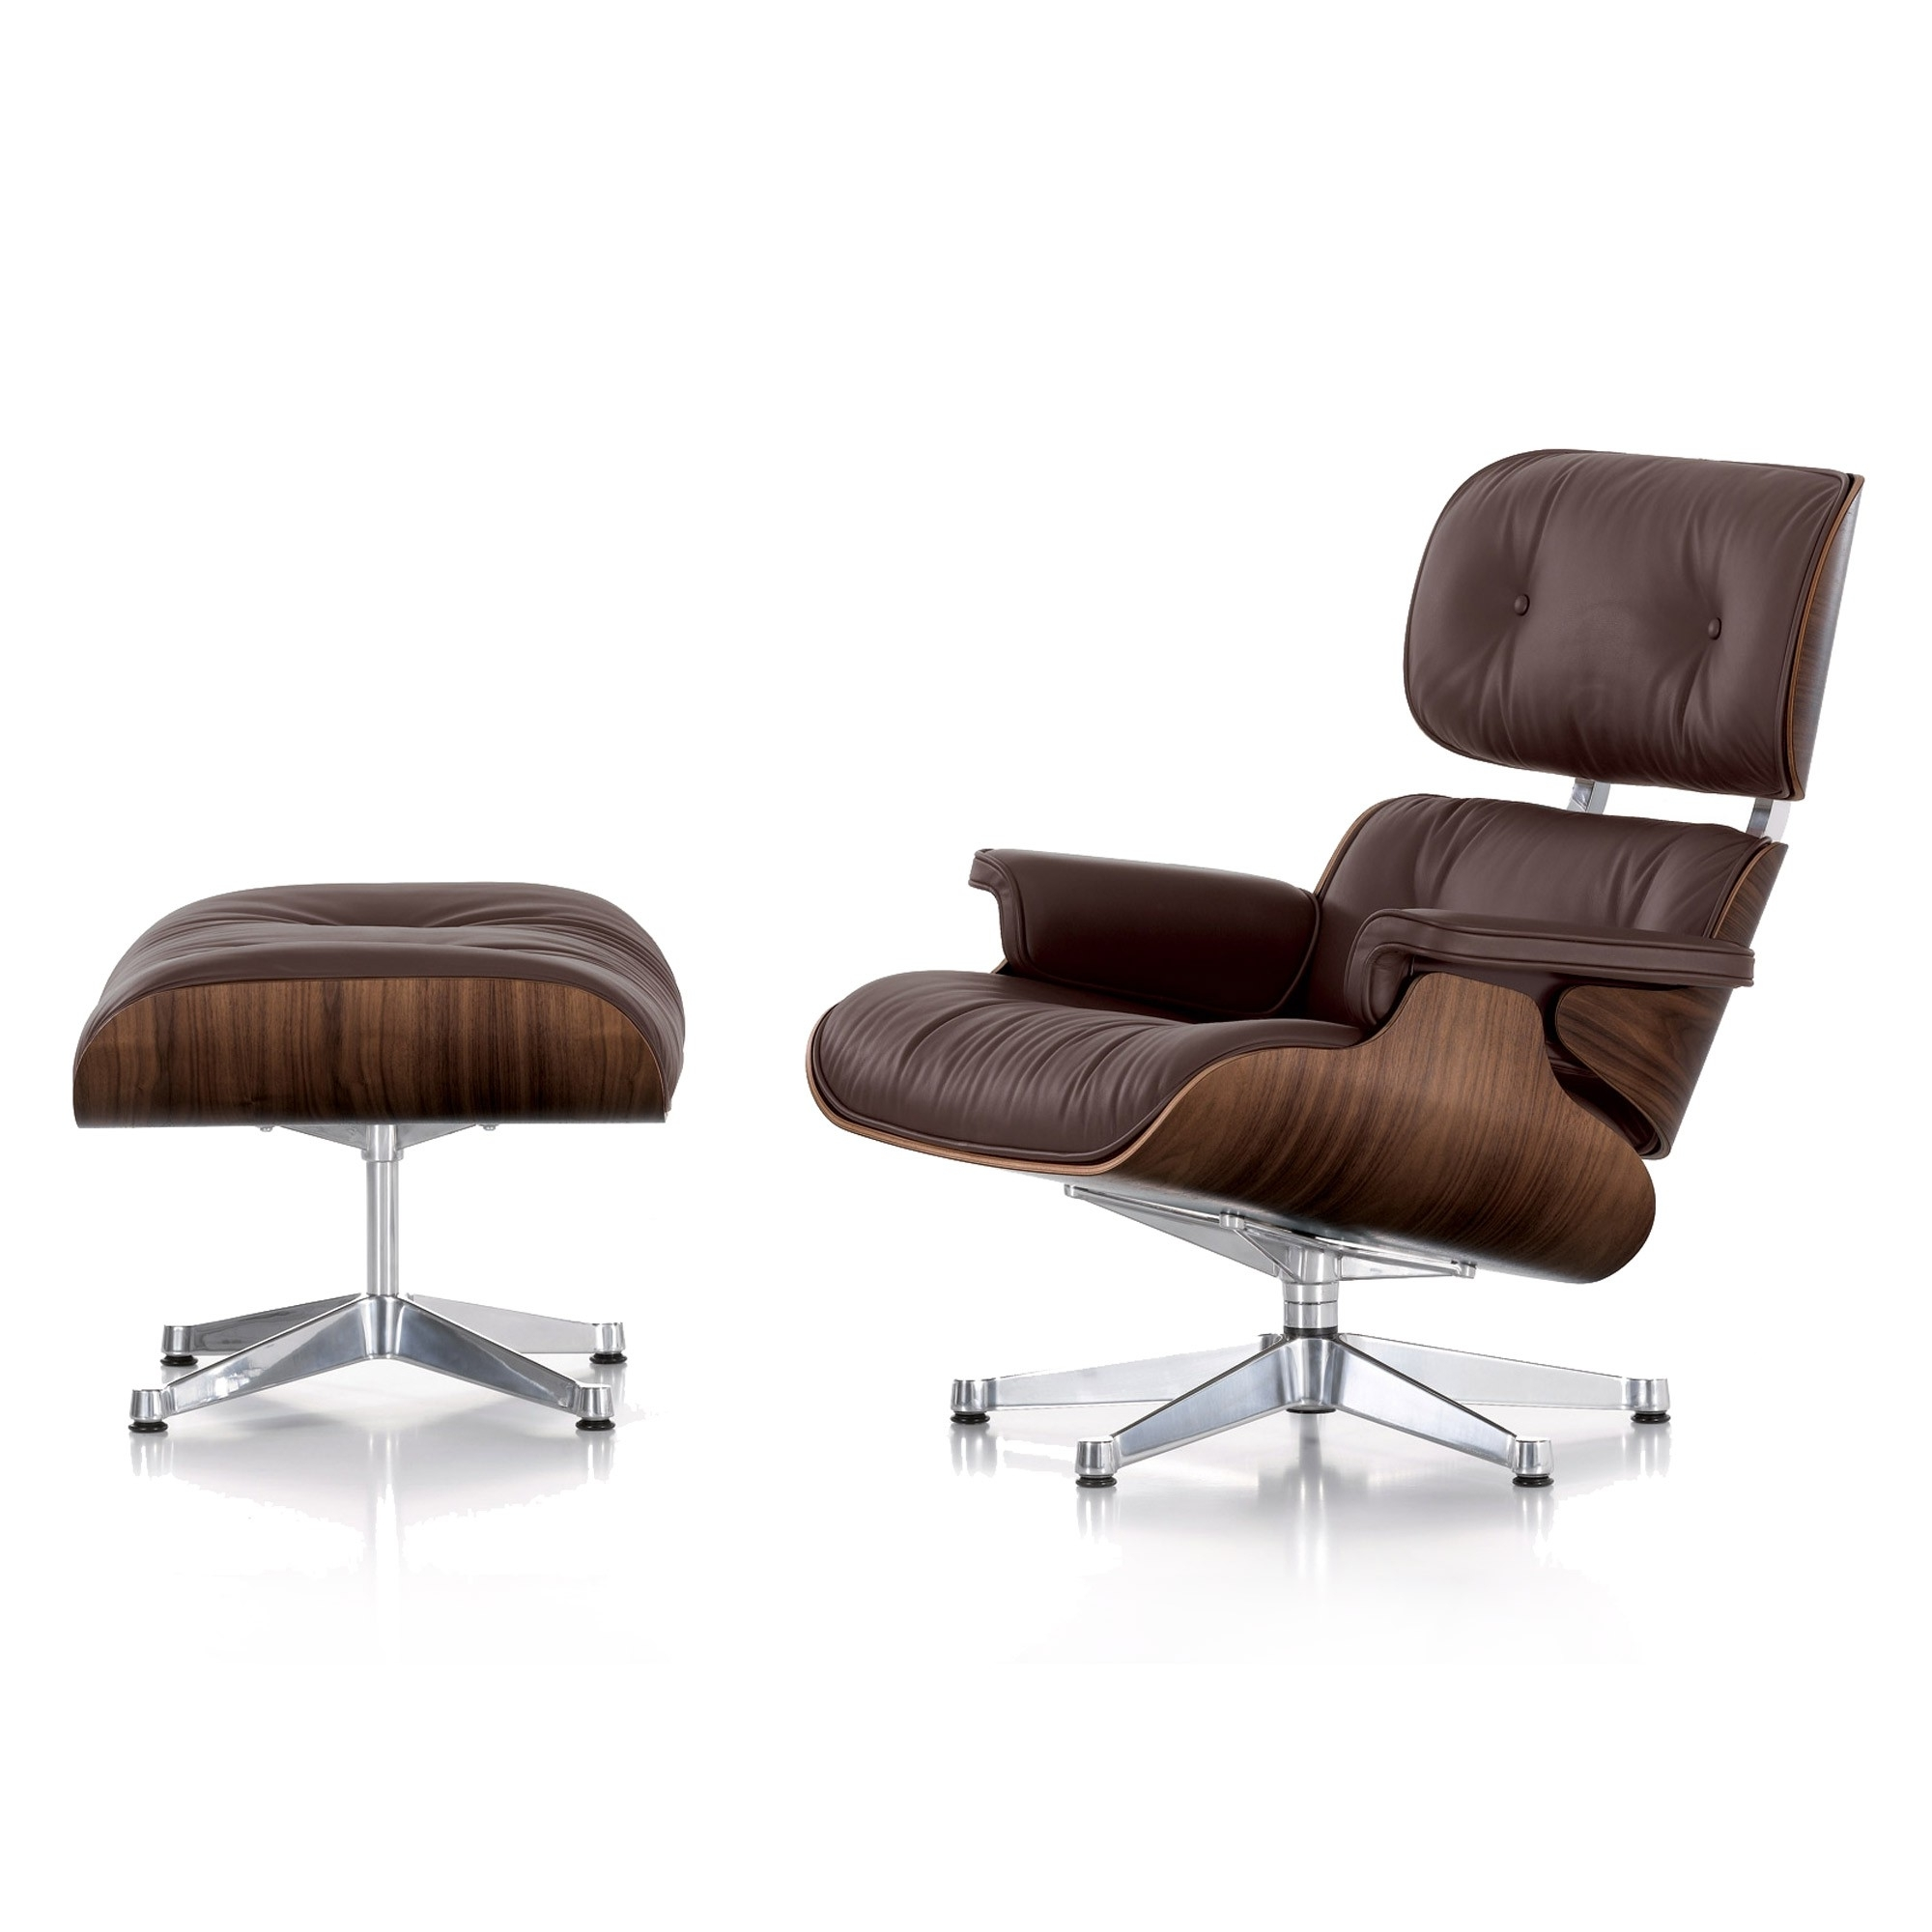 Widely Used Lounge Chair : Ottoman For Sale Eames Lounge Chair Ottoman Replica For Chaise Lounge Chairs With Ottoman (View 12 of 15)